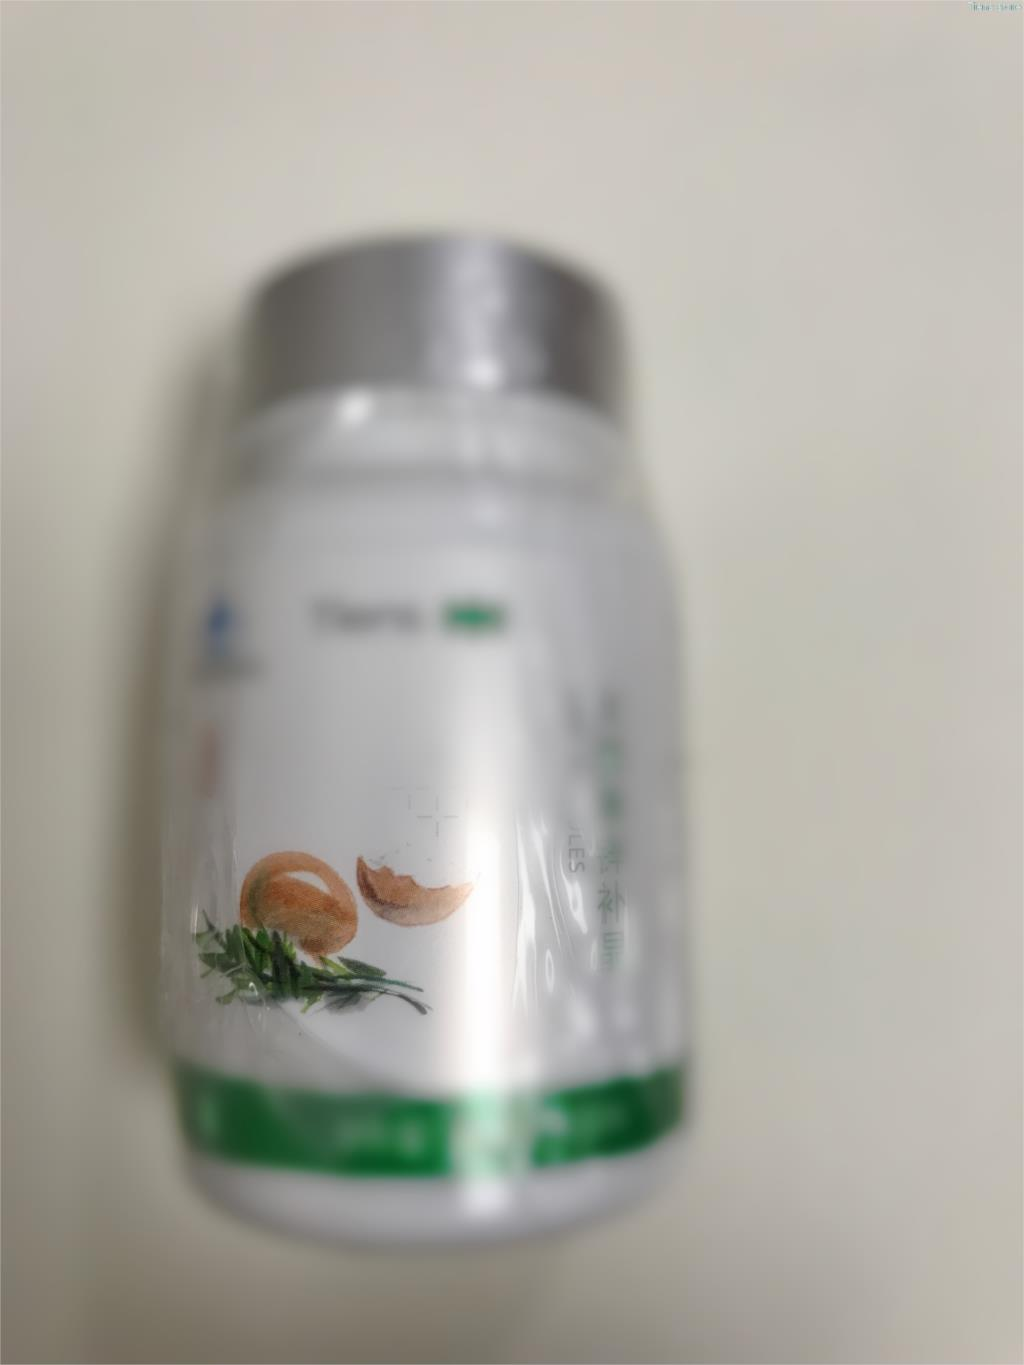 New package 2 bottles Tien Zinc Produced in 2018